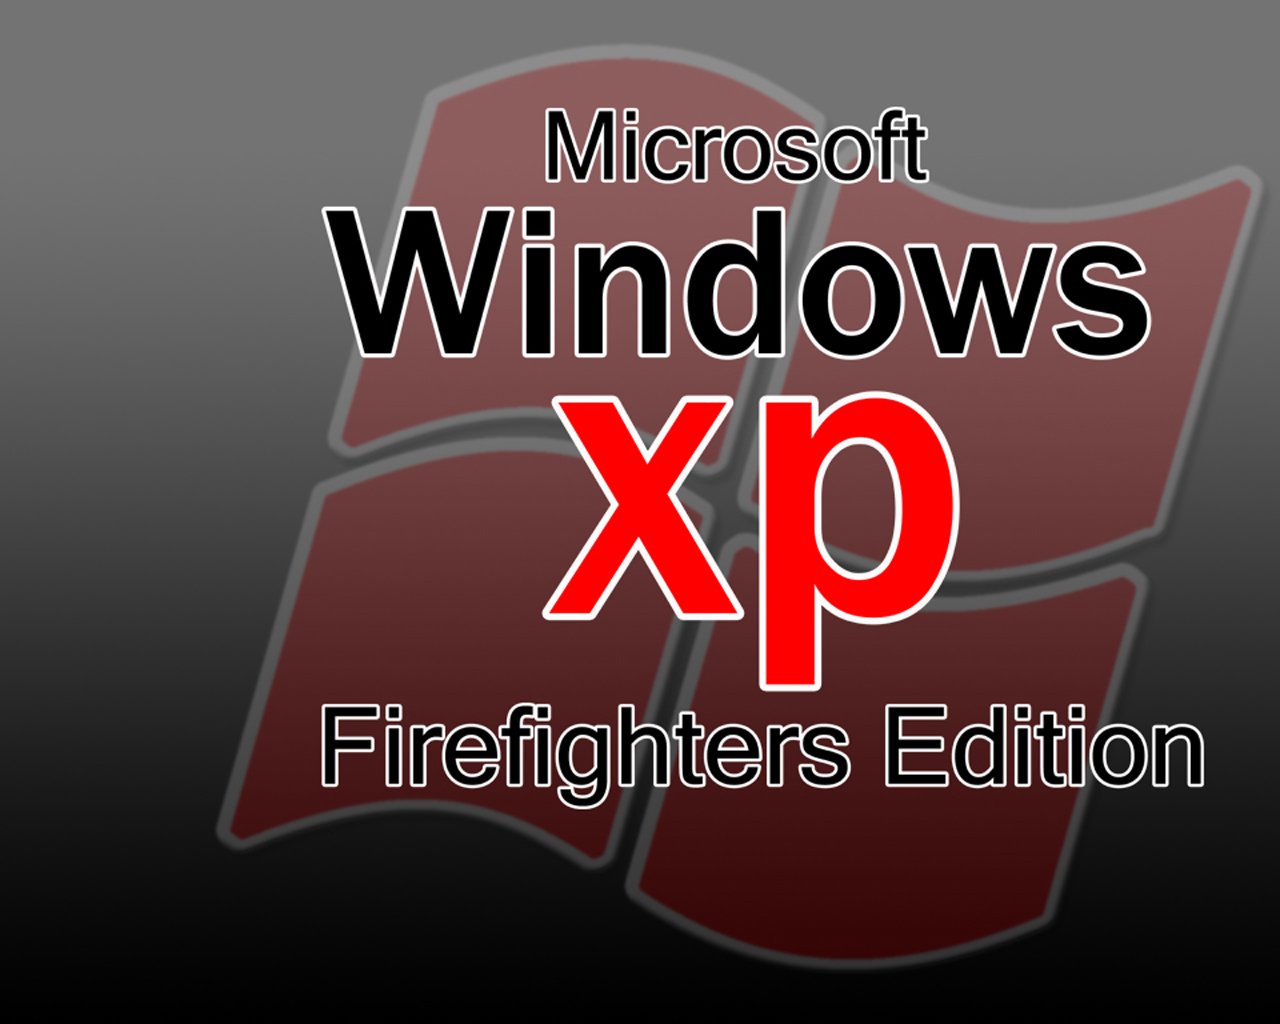 Non nude wallpaper wallpaper for Windows XP Windows XP Firefighters 1280x1024